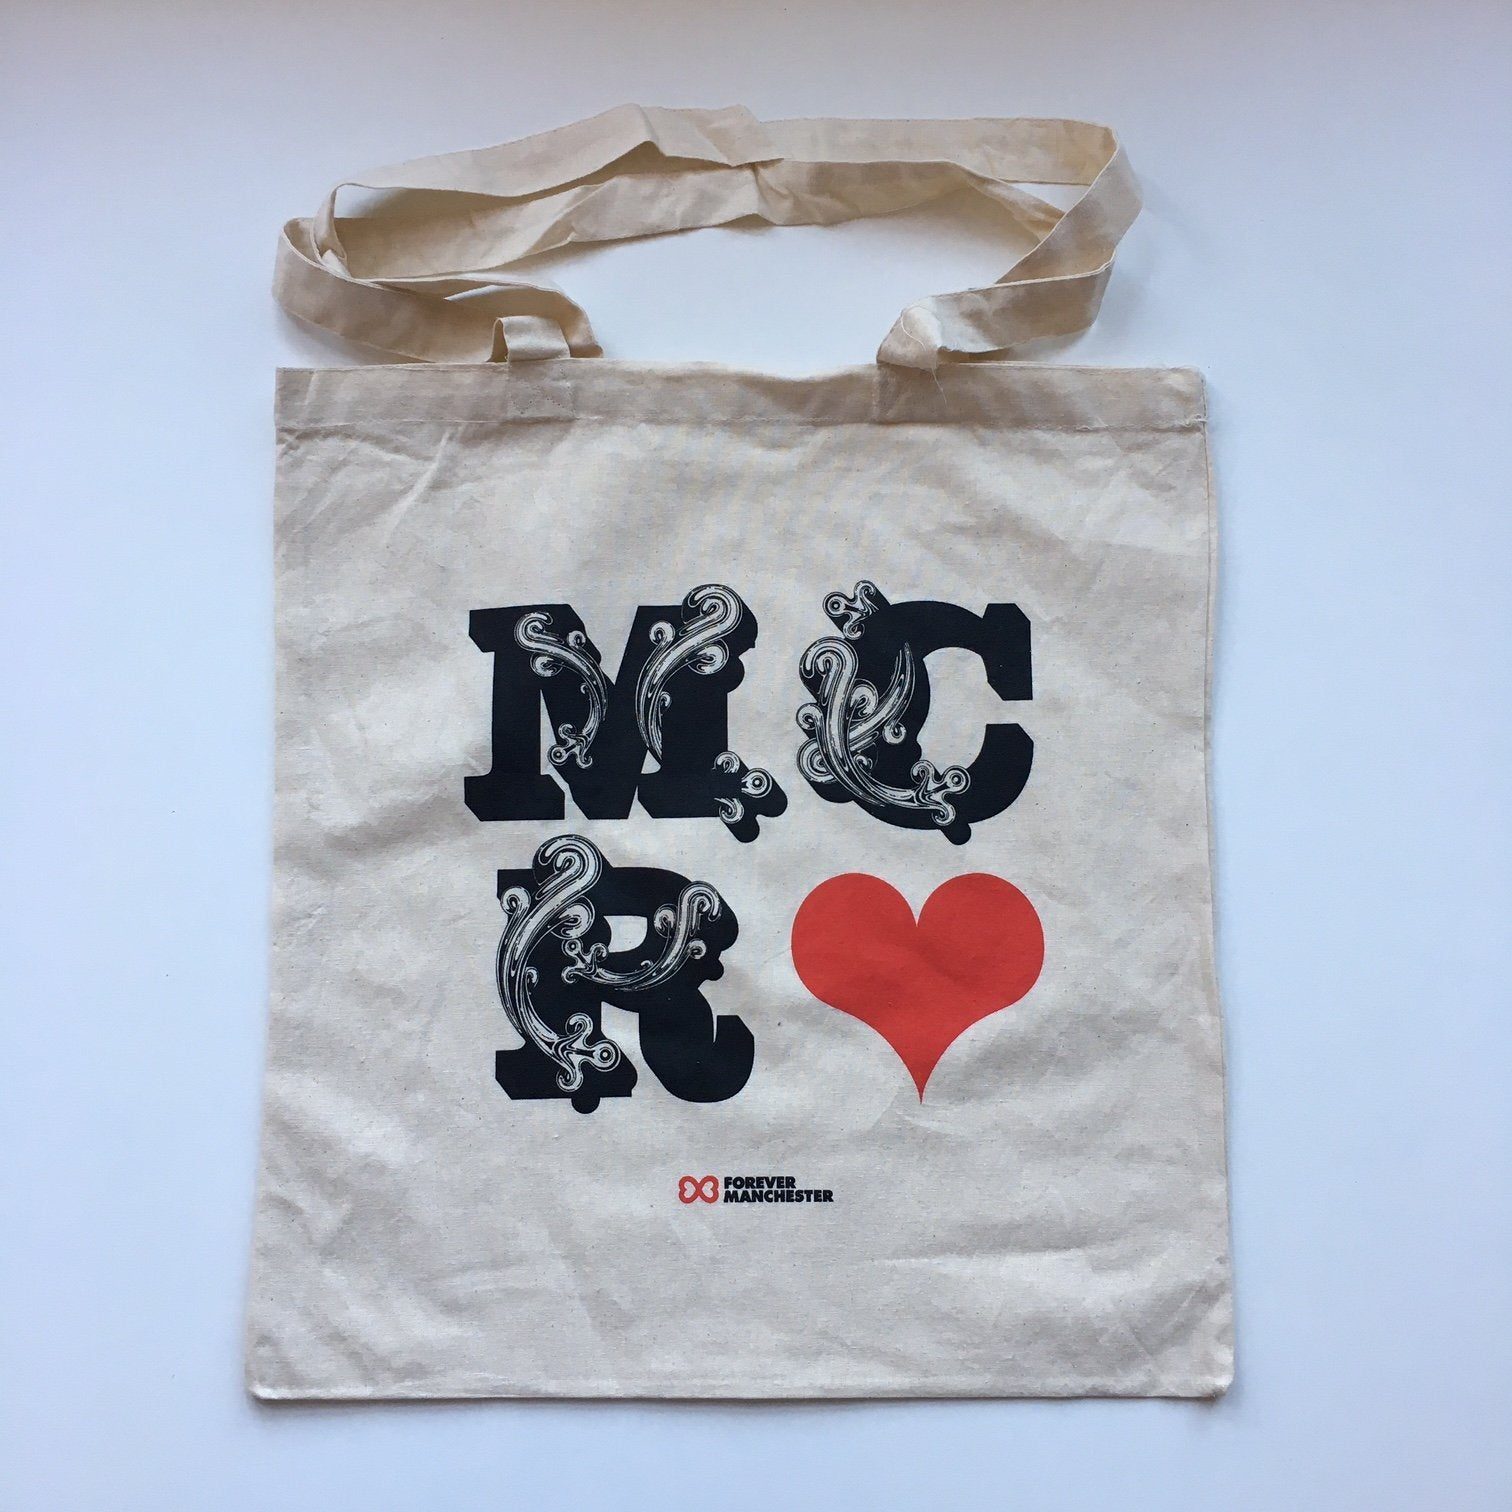 MANC-27: MCR Tote Bag designed by Si Scott